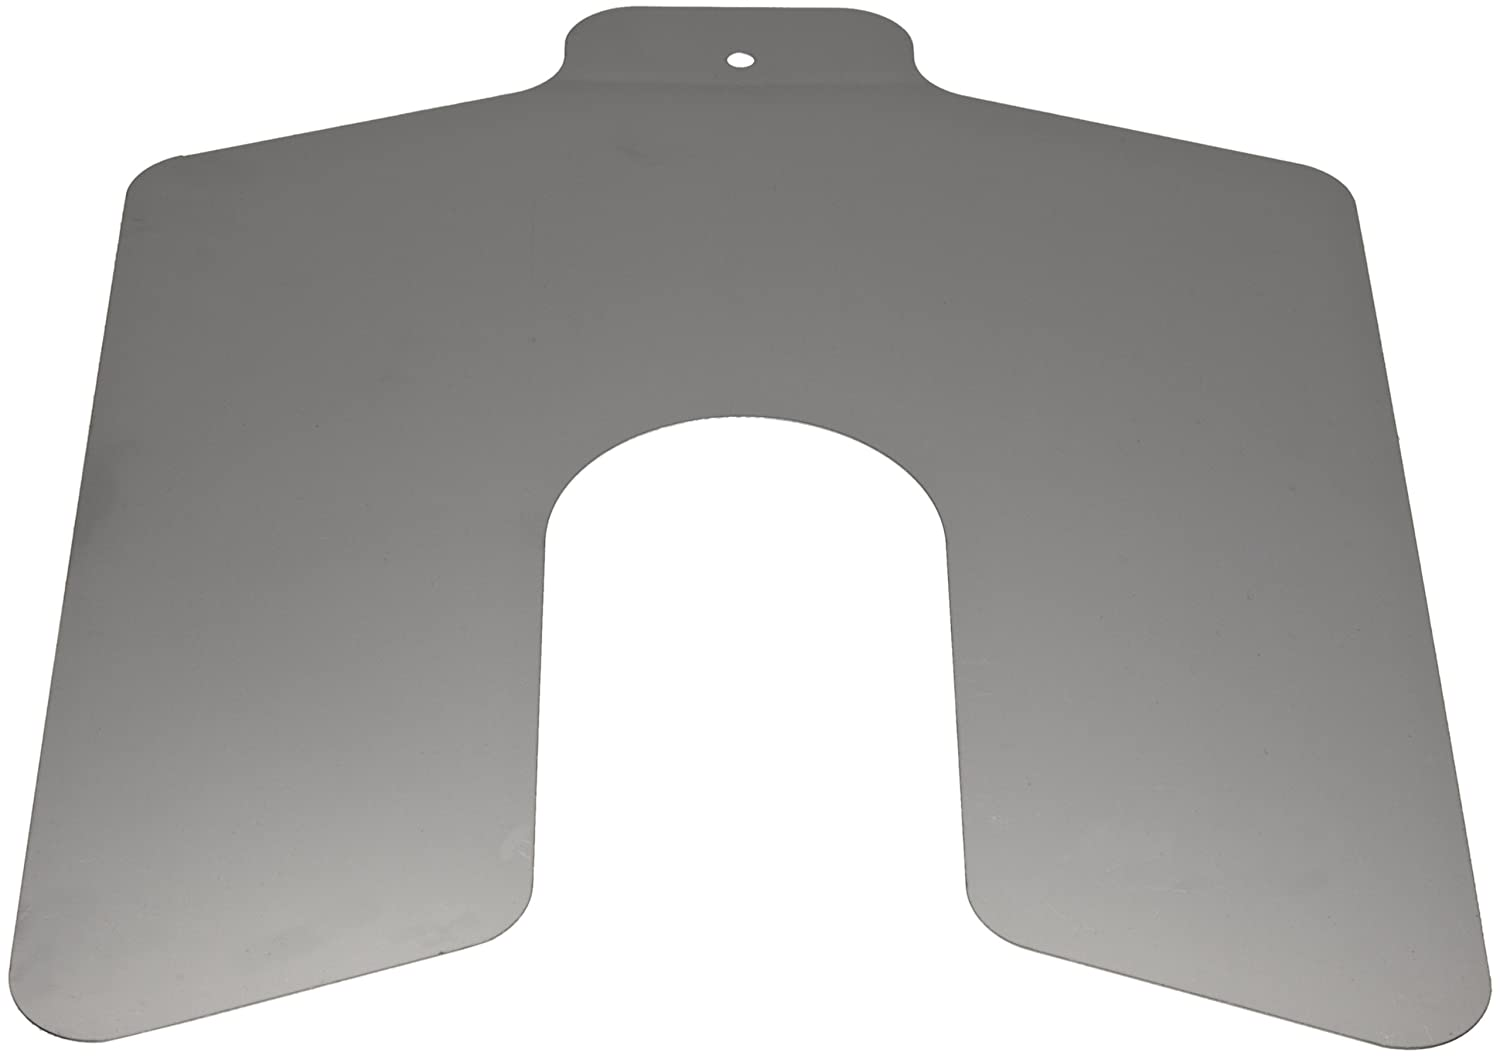 Stainless Steel Slotted Shim, Unpolished (Mill) Finish, 0.050' Thickness, 8' Width, 8' Length (Pack of 5) 0.050 Thickness 8 Width 8 Length (Pack of 5) Precision Brand 698158428502